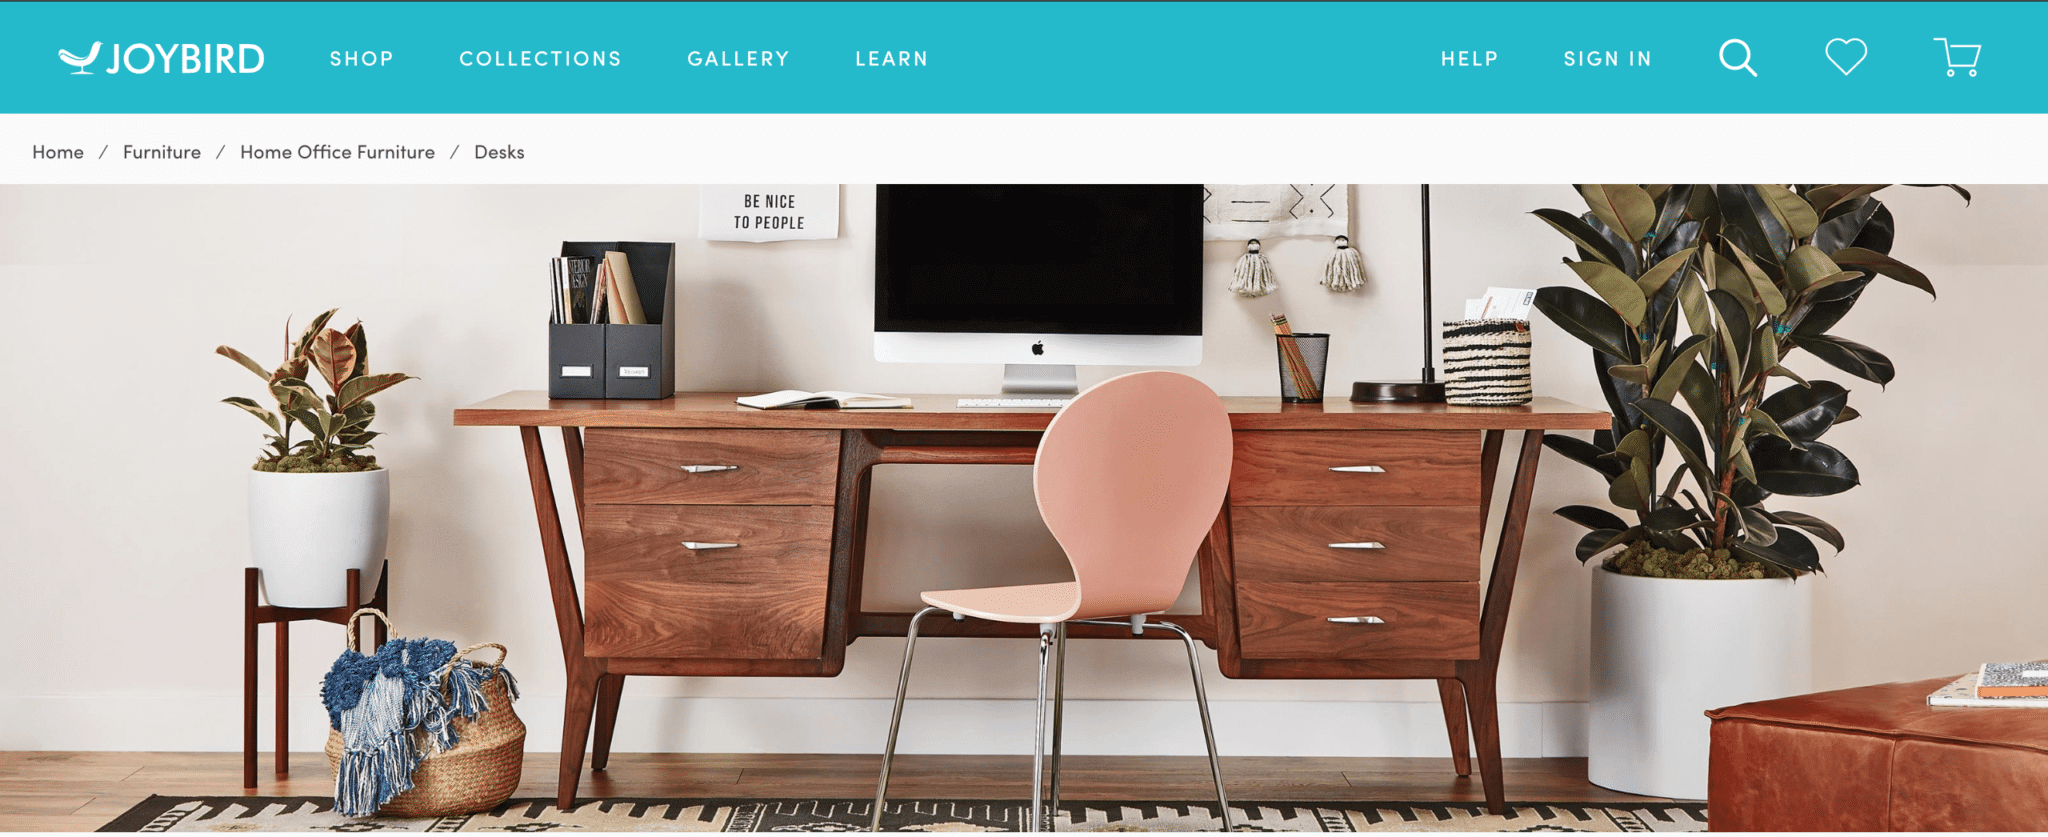 Joybird breadcrumb navigation showing the progression Home > Furniture > Home Office Furniture > Desks